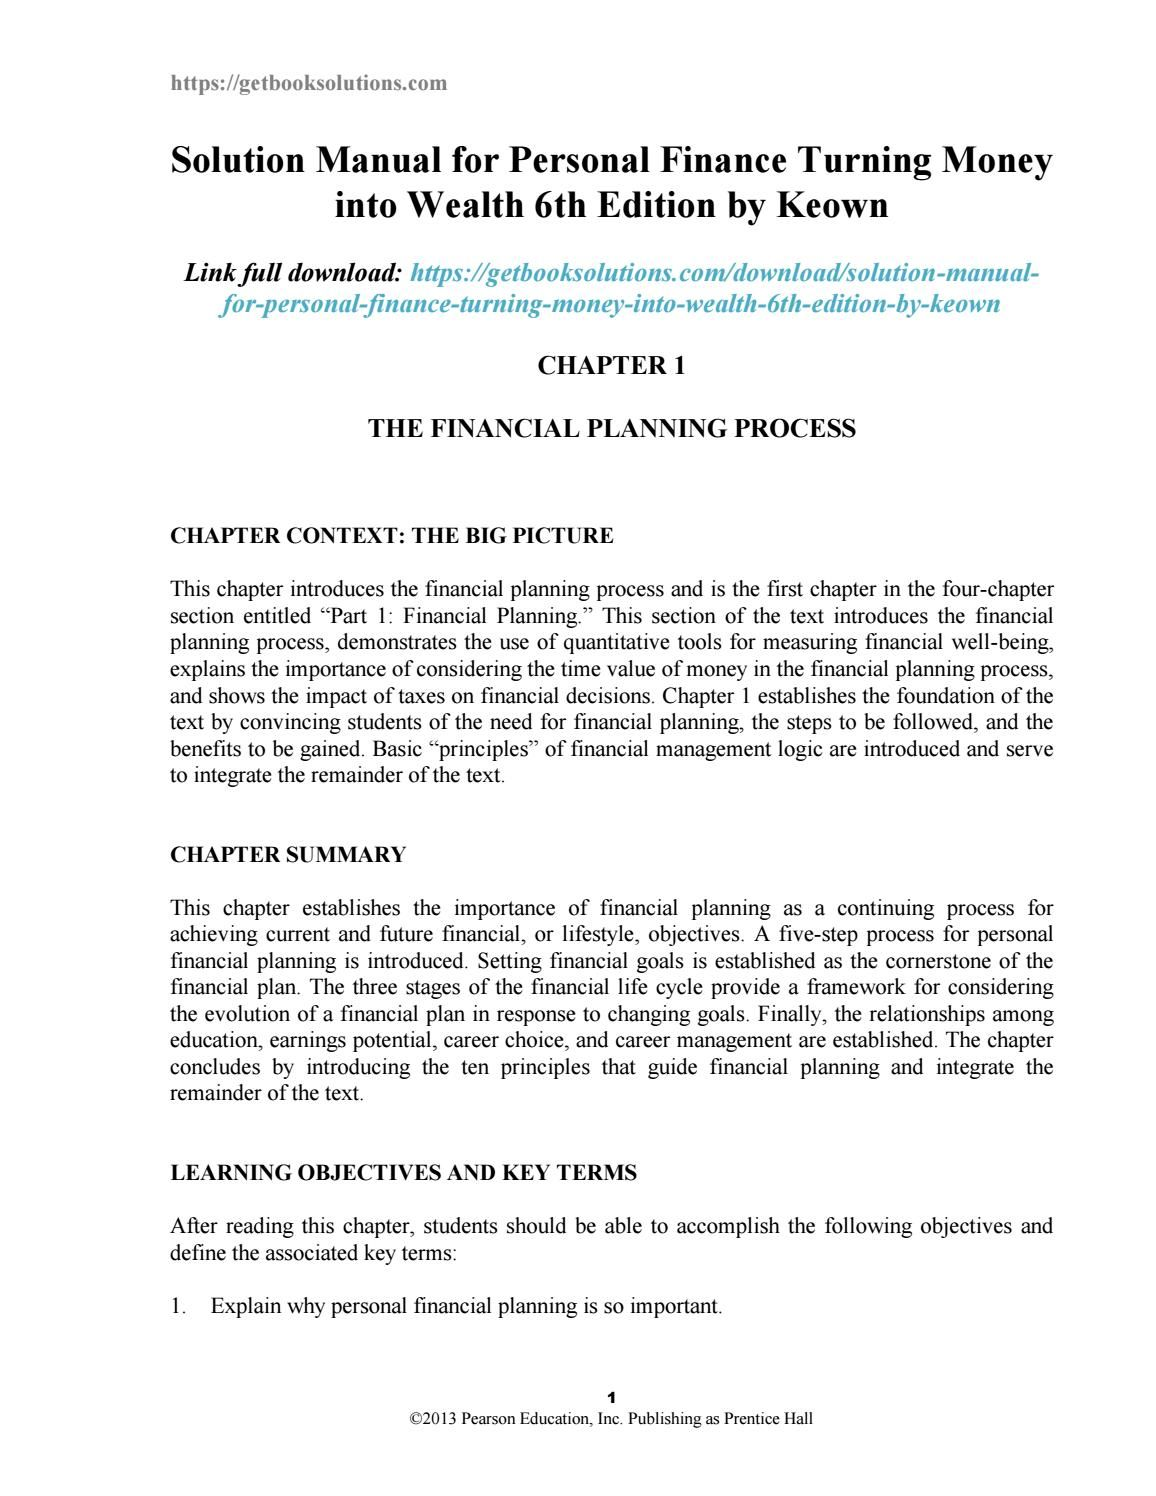 Wealth · Solution manual for personal finance turning money into wealth 6th  edition by keown